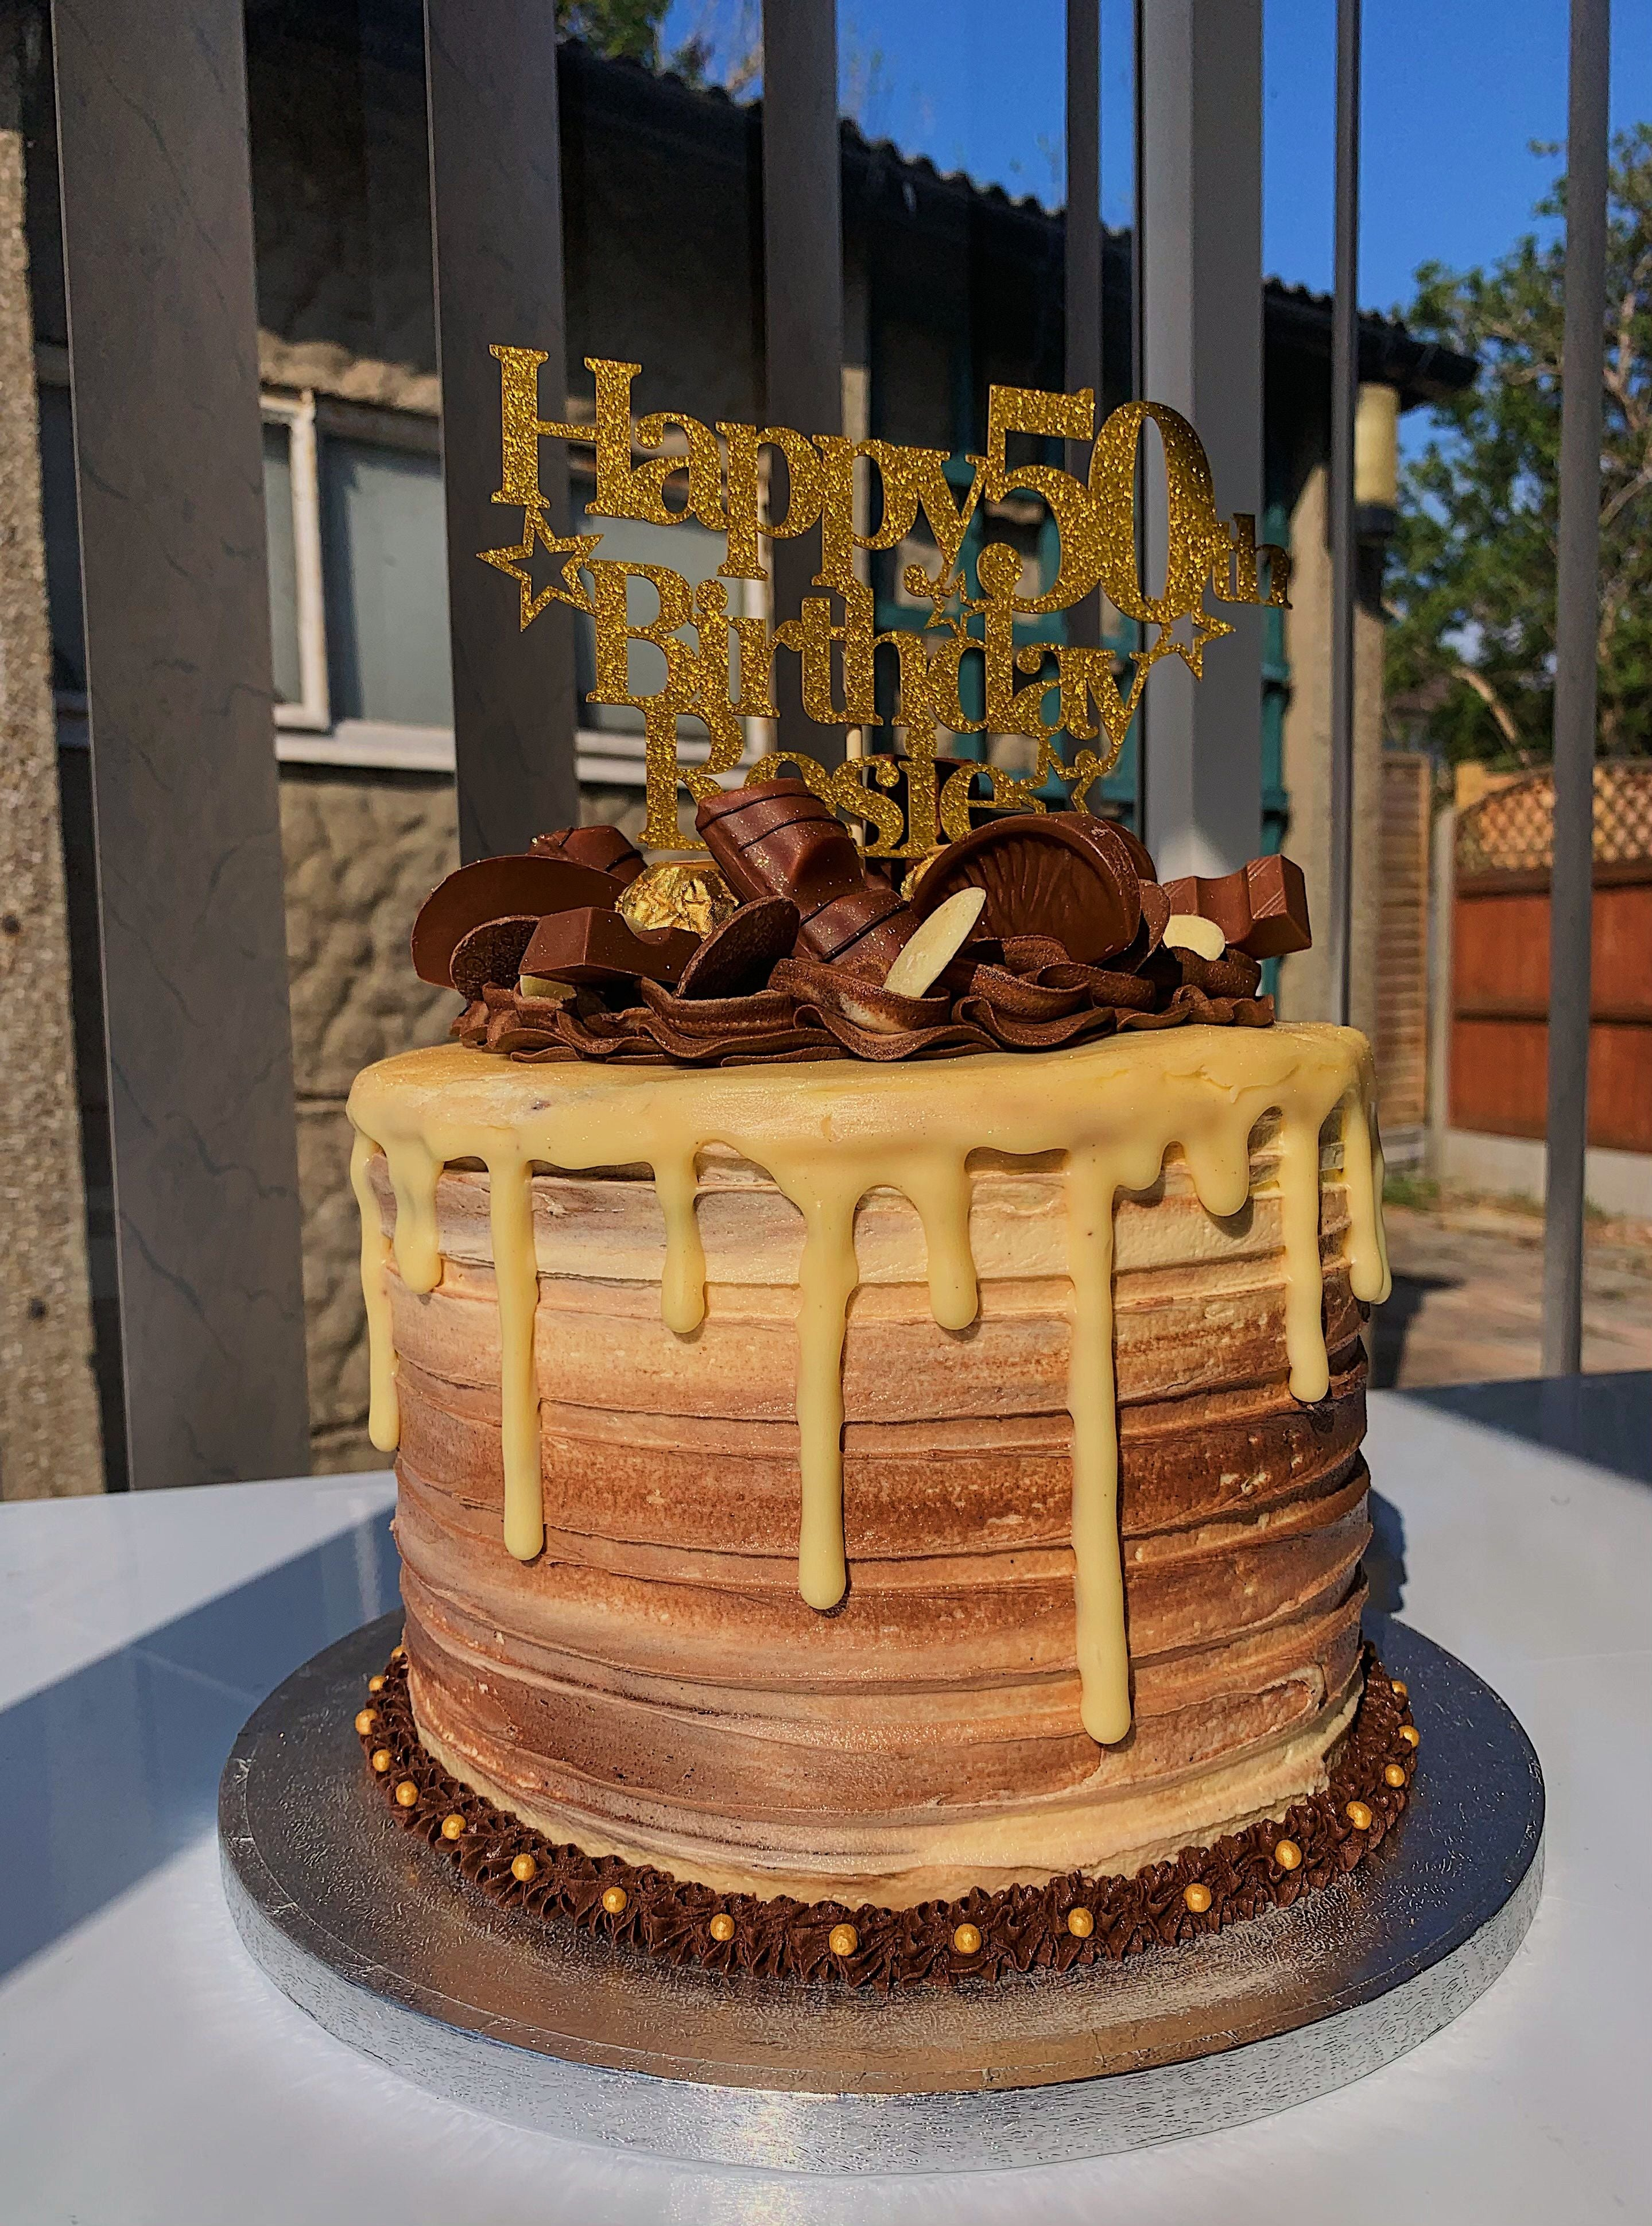 Chocolate cake decorated with Kinder and Ferrero chocolates and Happy 50th Birthday on top